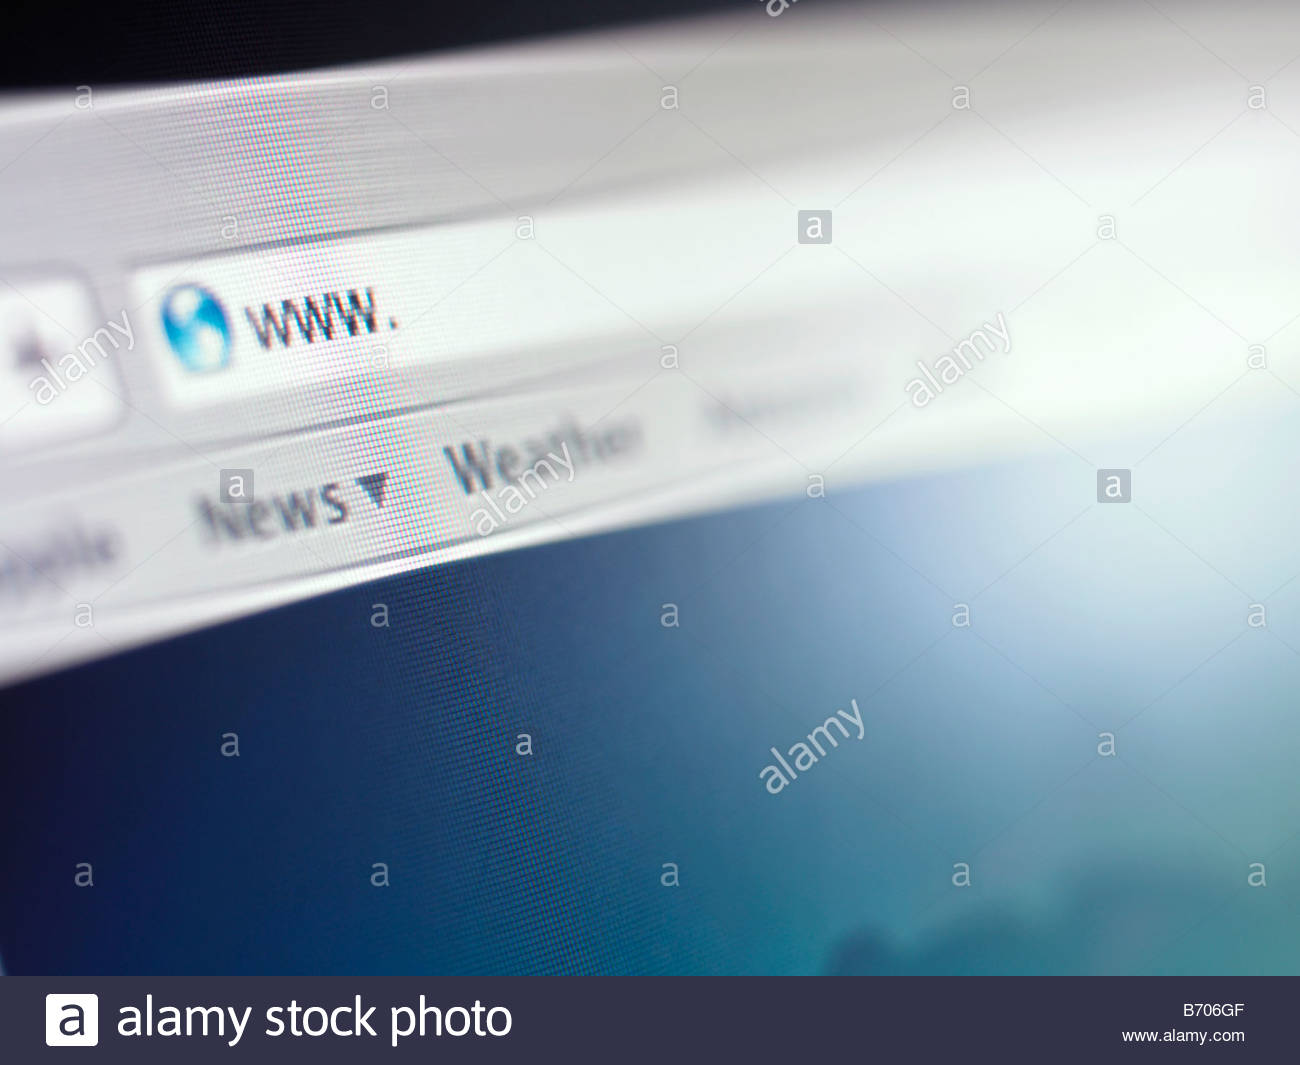 Close up de barre d'adresse de navigateur internet Photo Stock